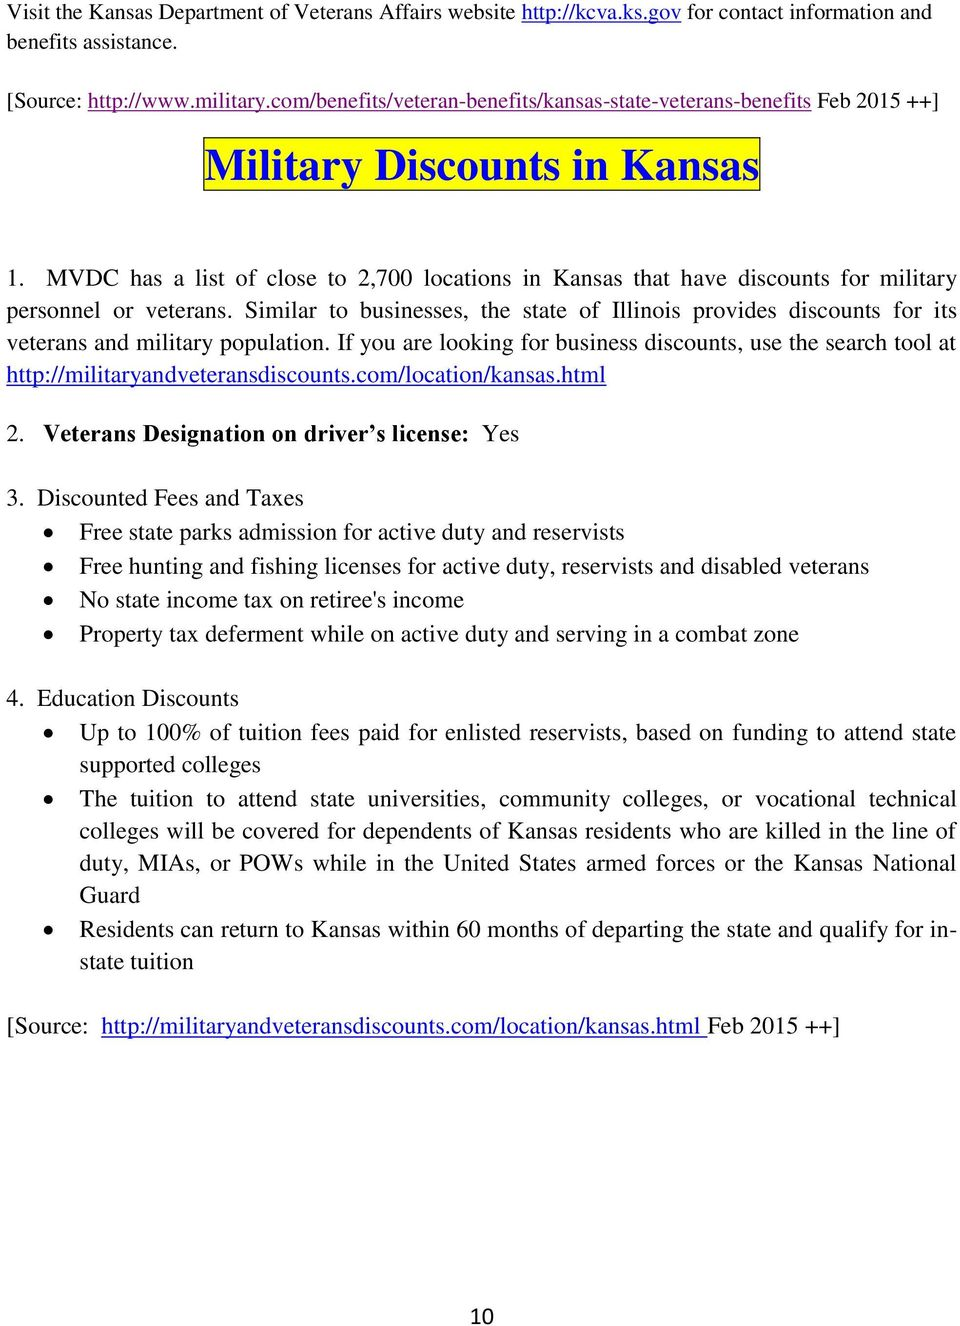 MVDC has a list of close to 2,700 locations in Kansas that have discounts for military personnel or veterans.